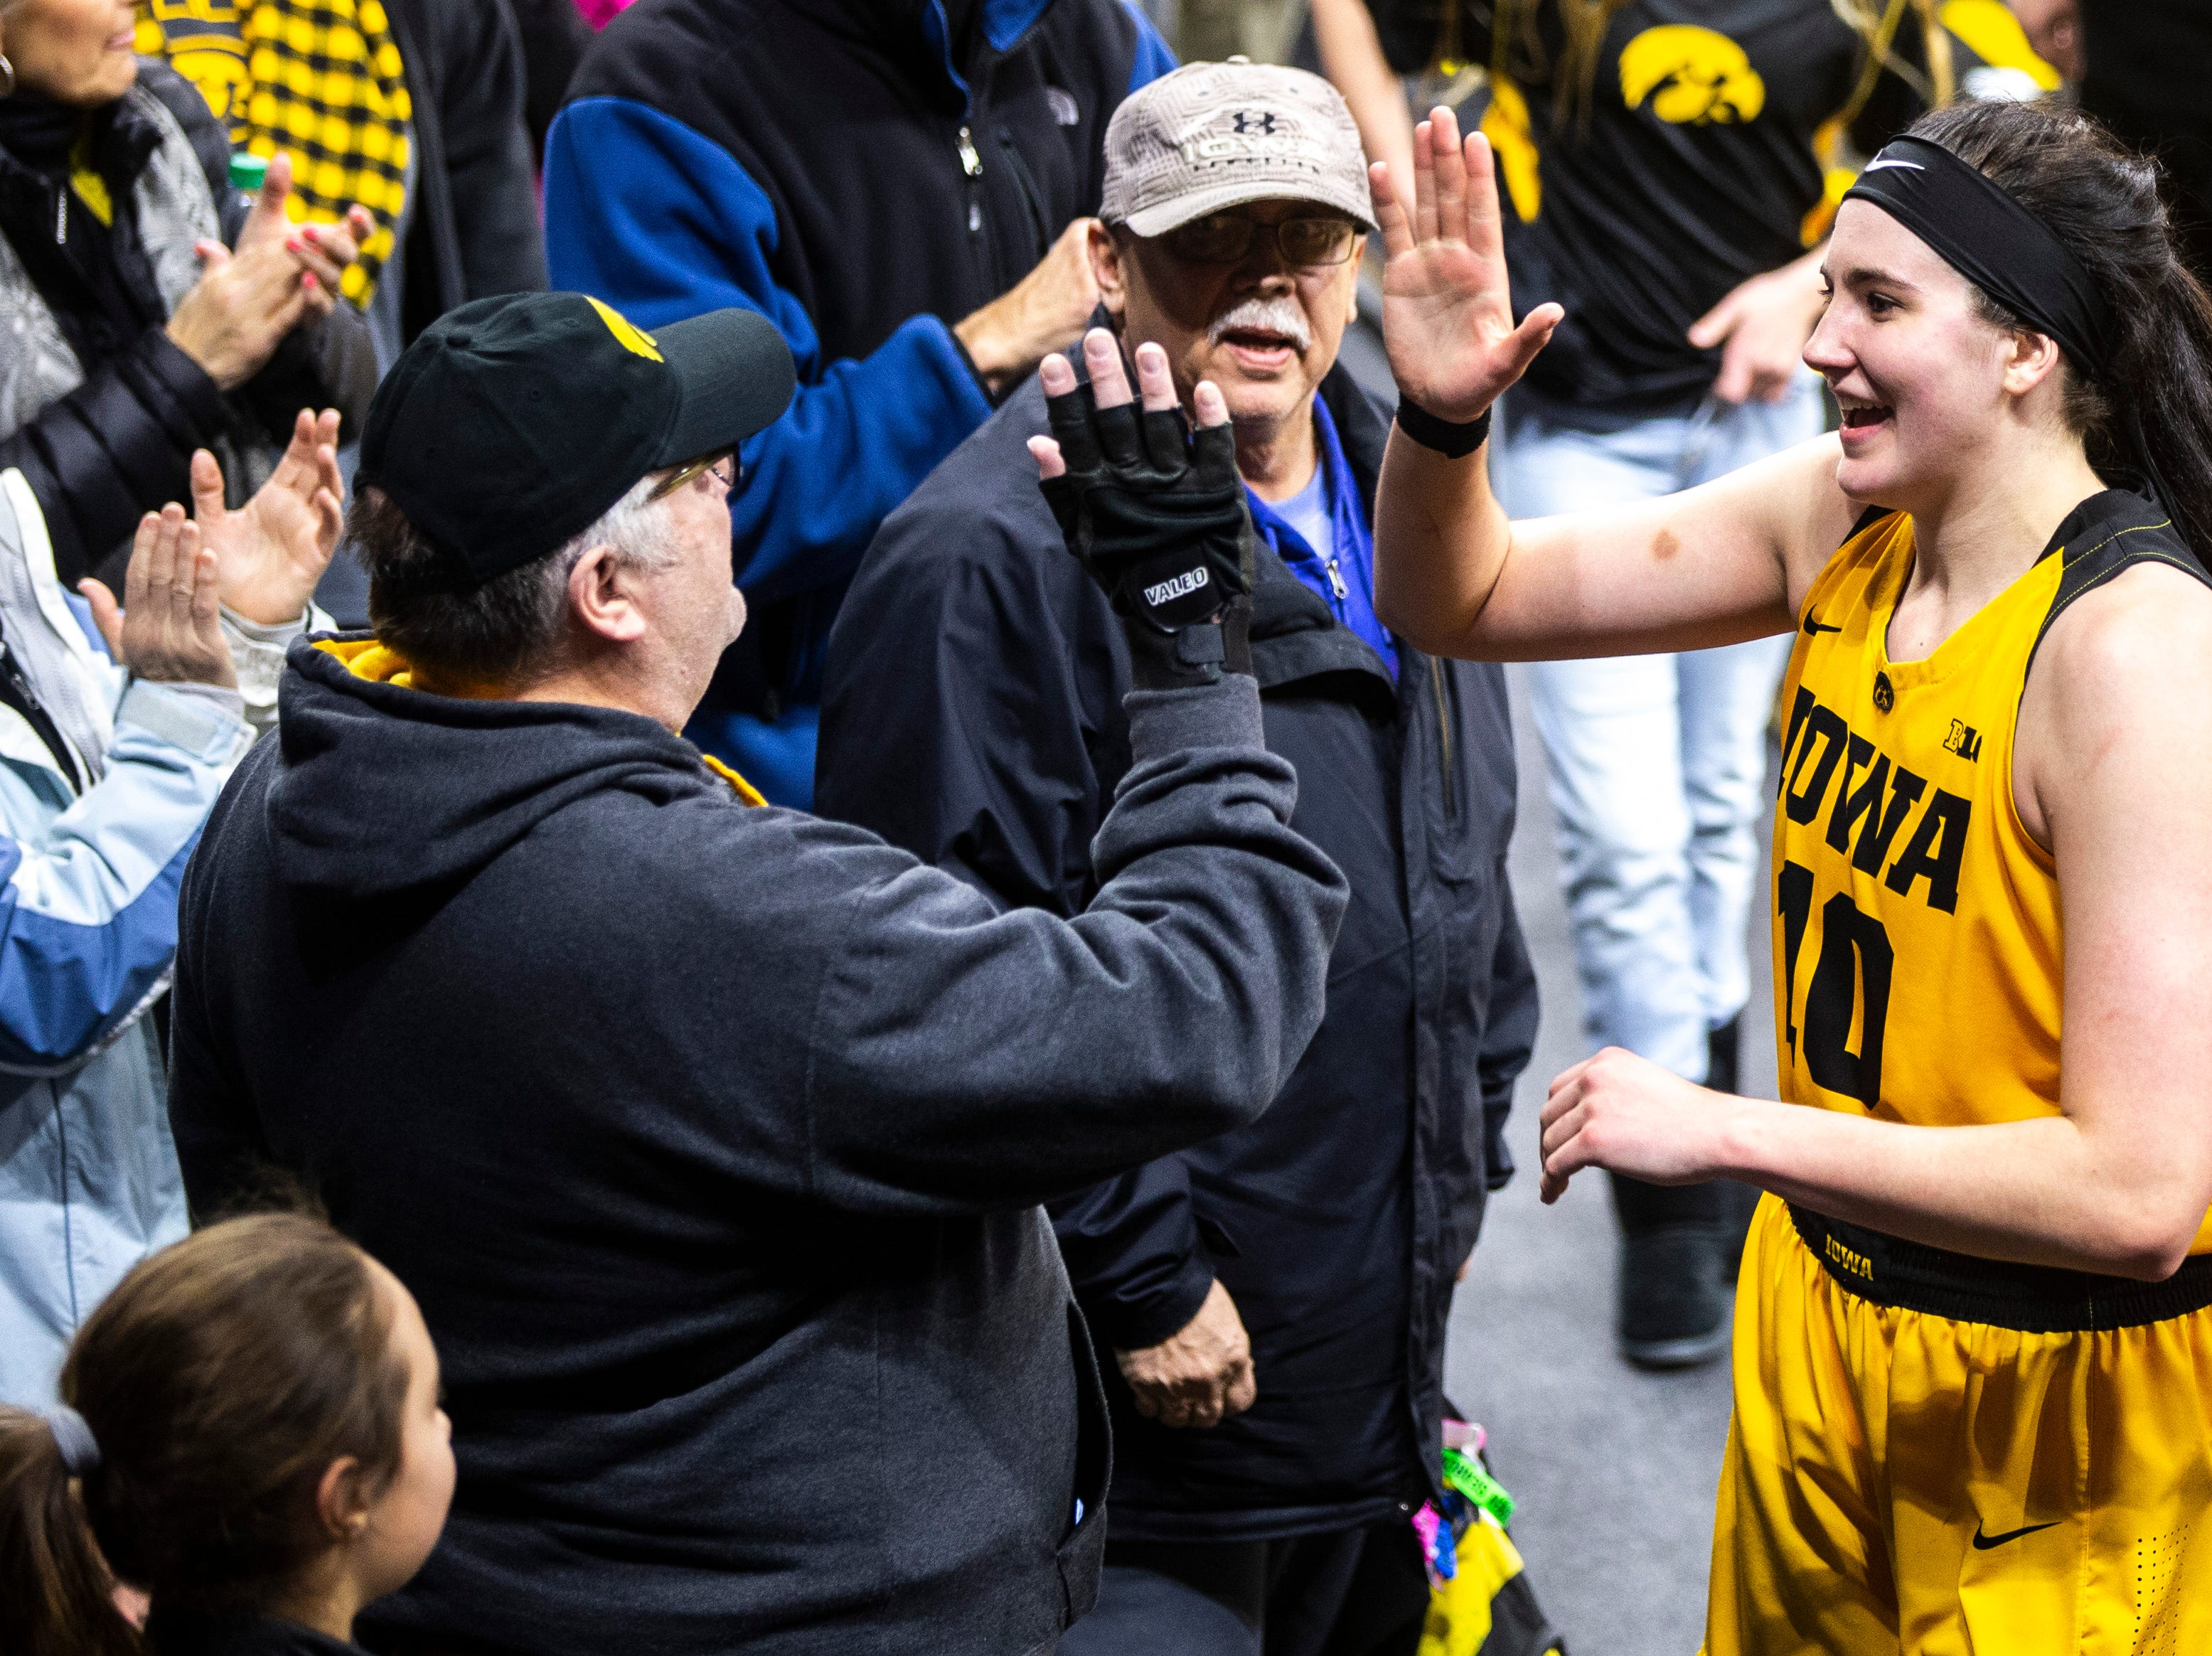 Iowa center Megan Gustafson (10) high-fives fans after a NCAA Big Ten Conference women's basketball game on Thursday, Feb. 7, 2019 at Carver-Hawkeye Arena in Iowa City, Iowa.